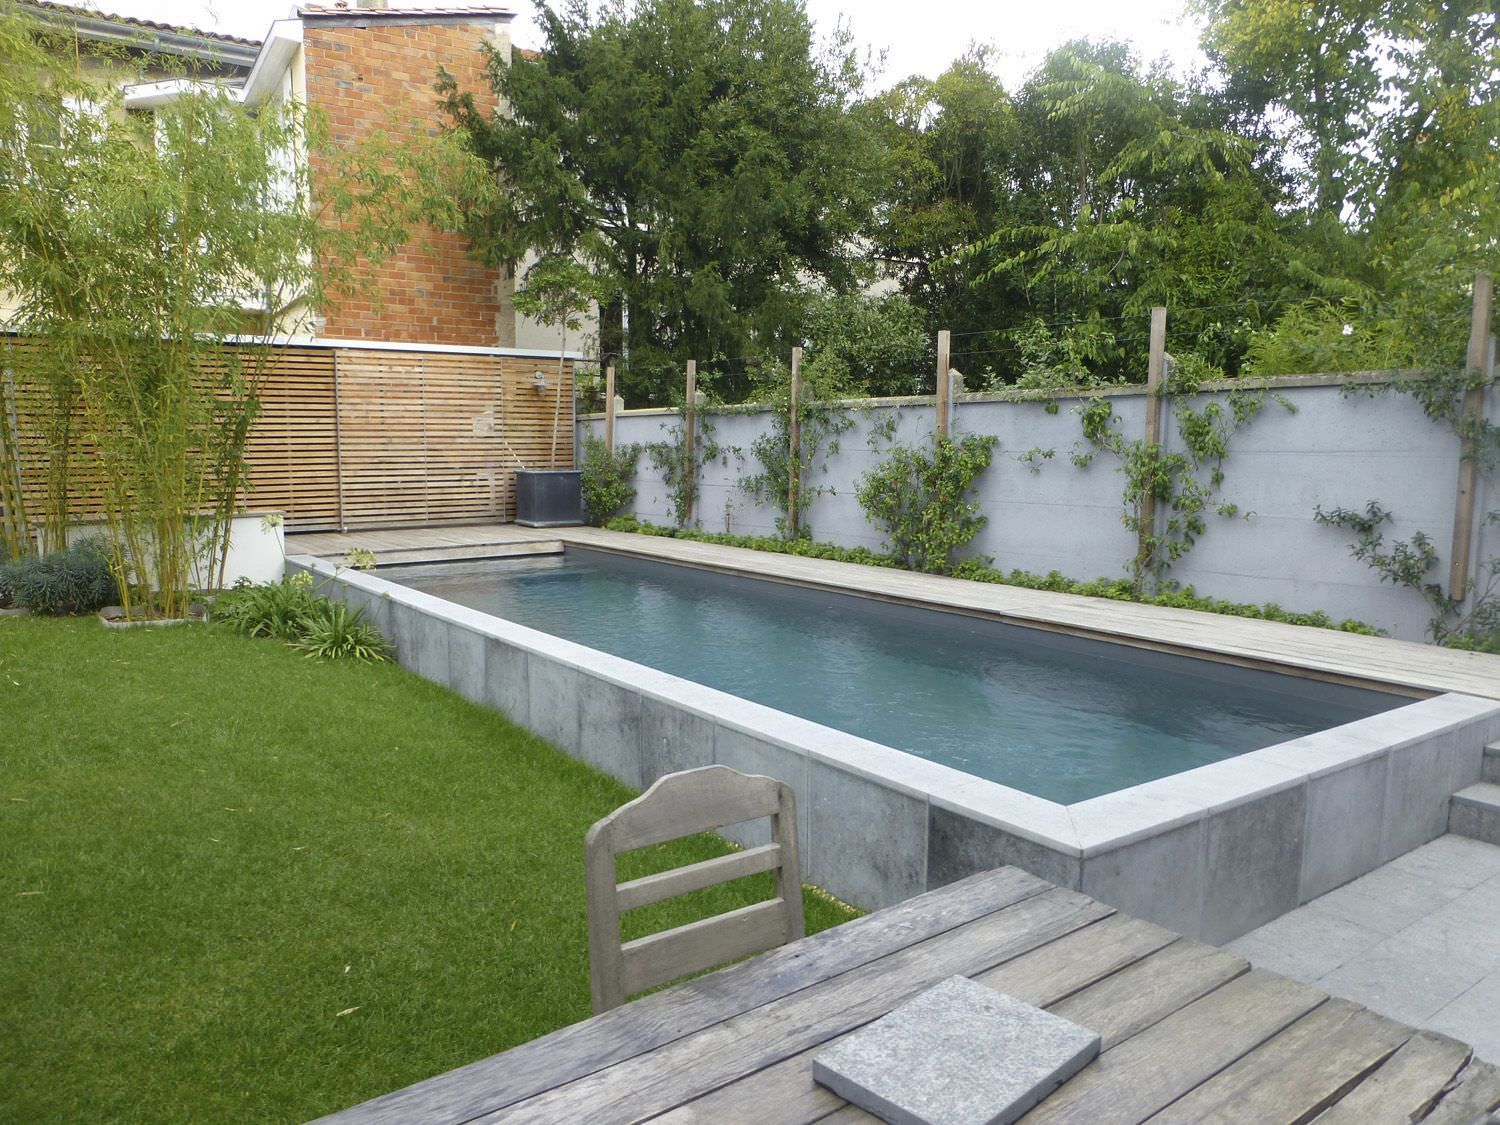 Piscine semi enterr e en b ton plouf pinterest for Piscine pour terrasse